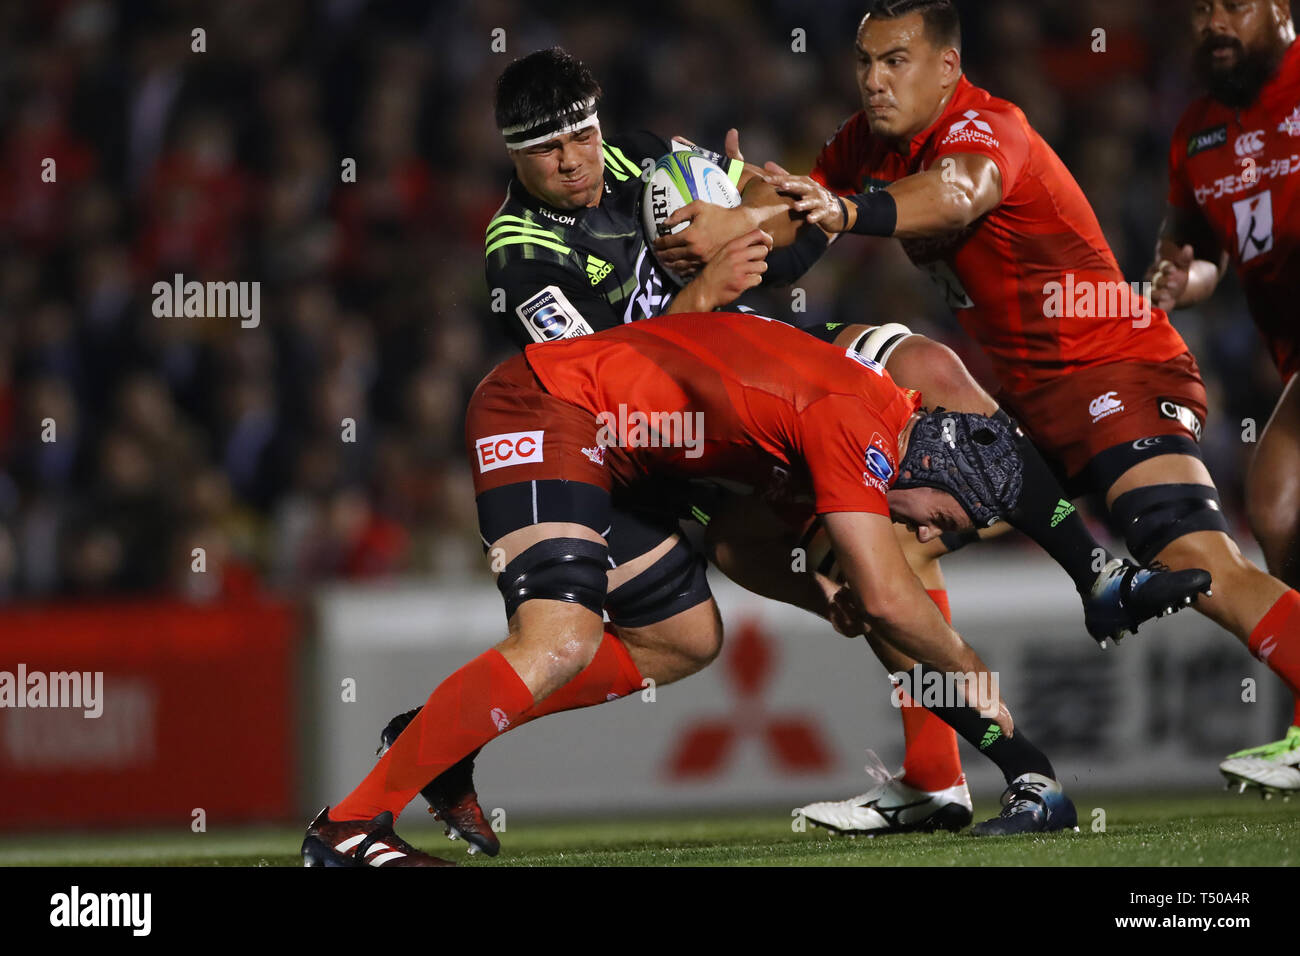 Tokyo, Japan. 19th Apr, 2019. Reed Prinsep (Hurricanes) Rugby : 2019 Super Rugby match between Sunwolves 23-29 Hurricanes at Prince Chichibu Memorial Stadium in Tokyo, Japan . Credit: YUTAKA/AFLO SPORT/Alamy Live News Stock Photo